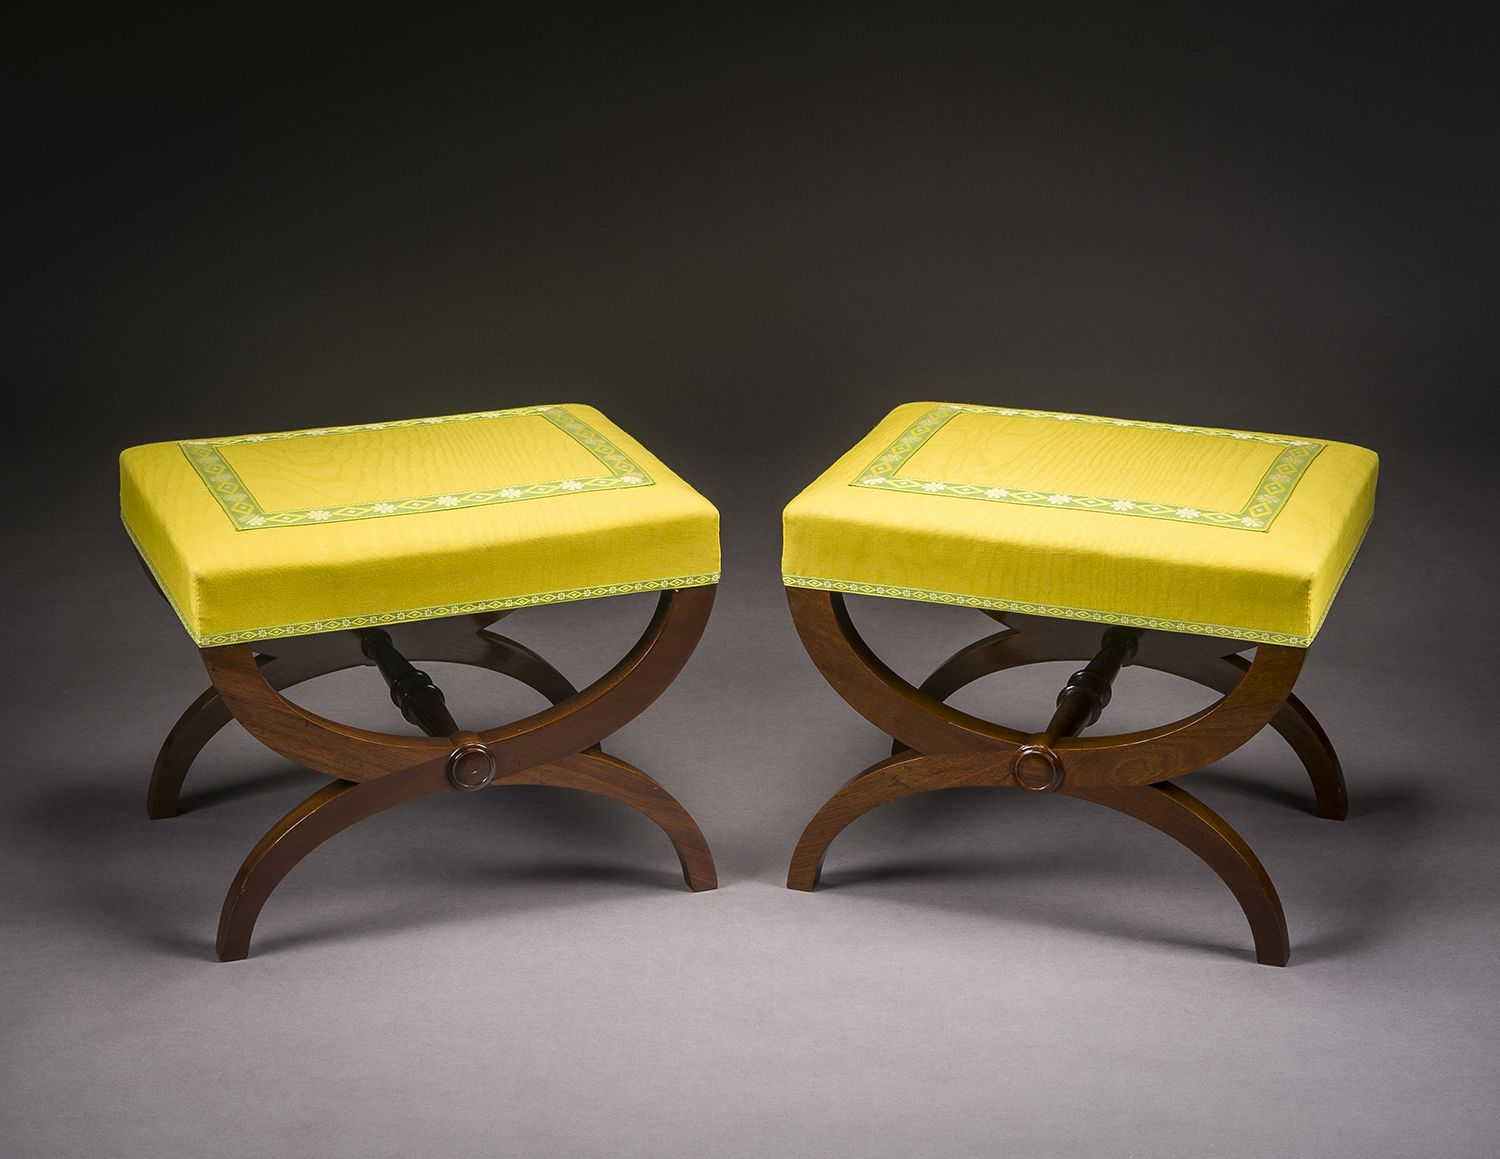 Pair Curule Benches, about 1830–35